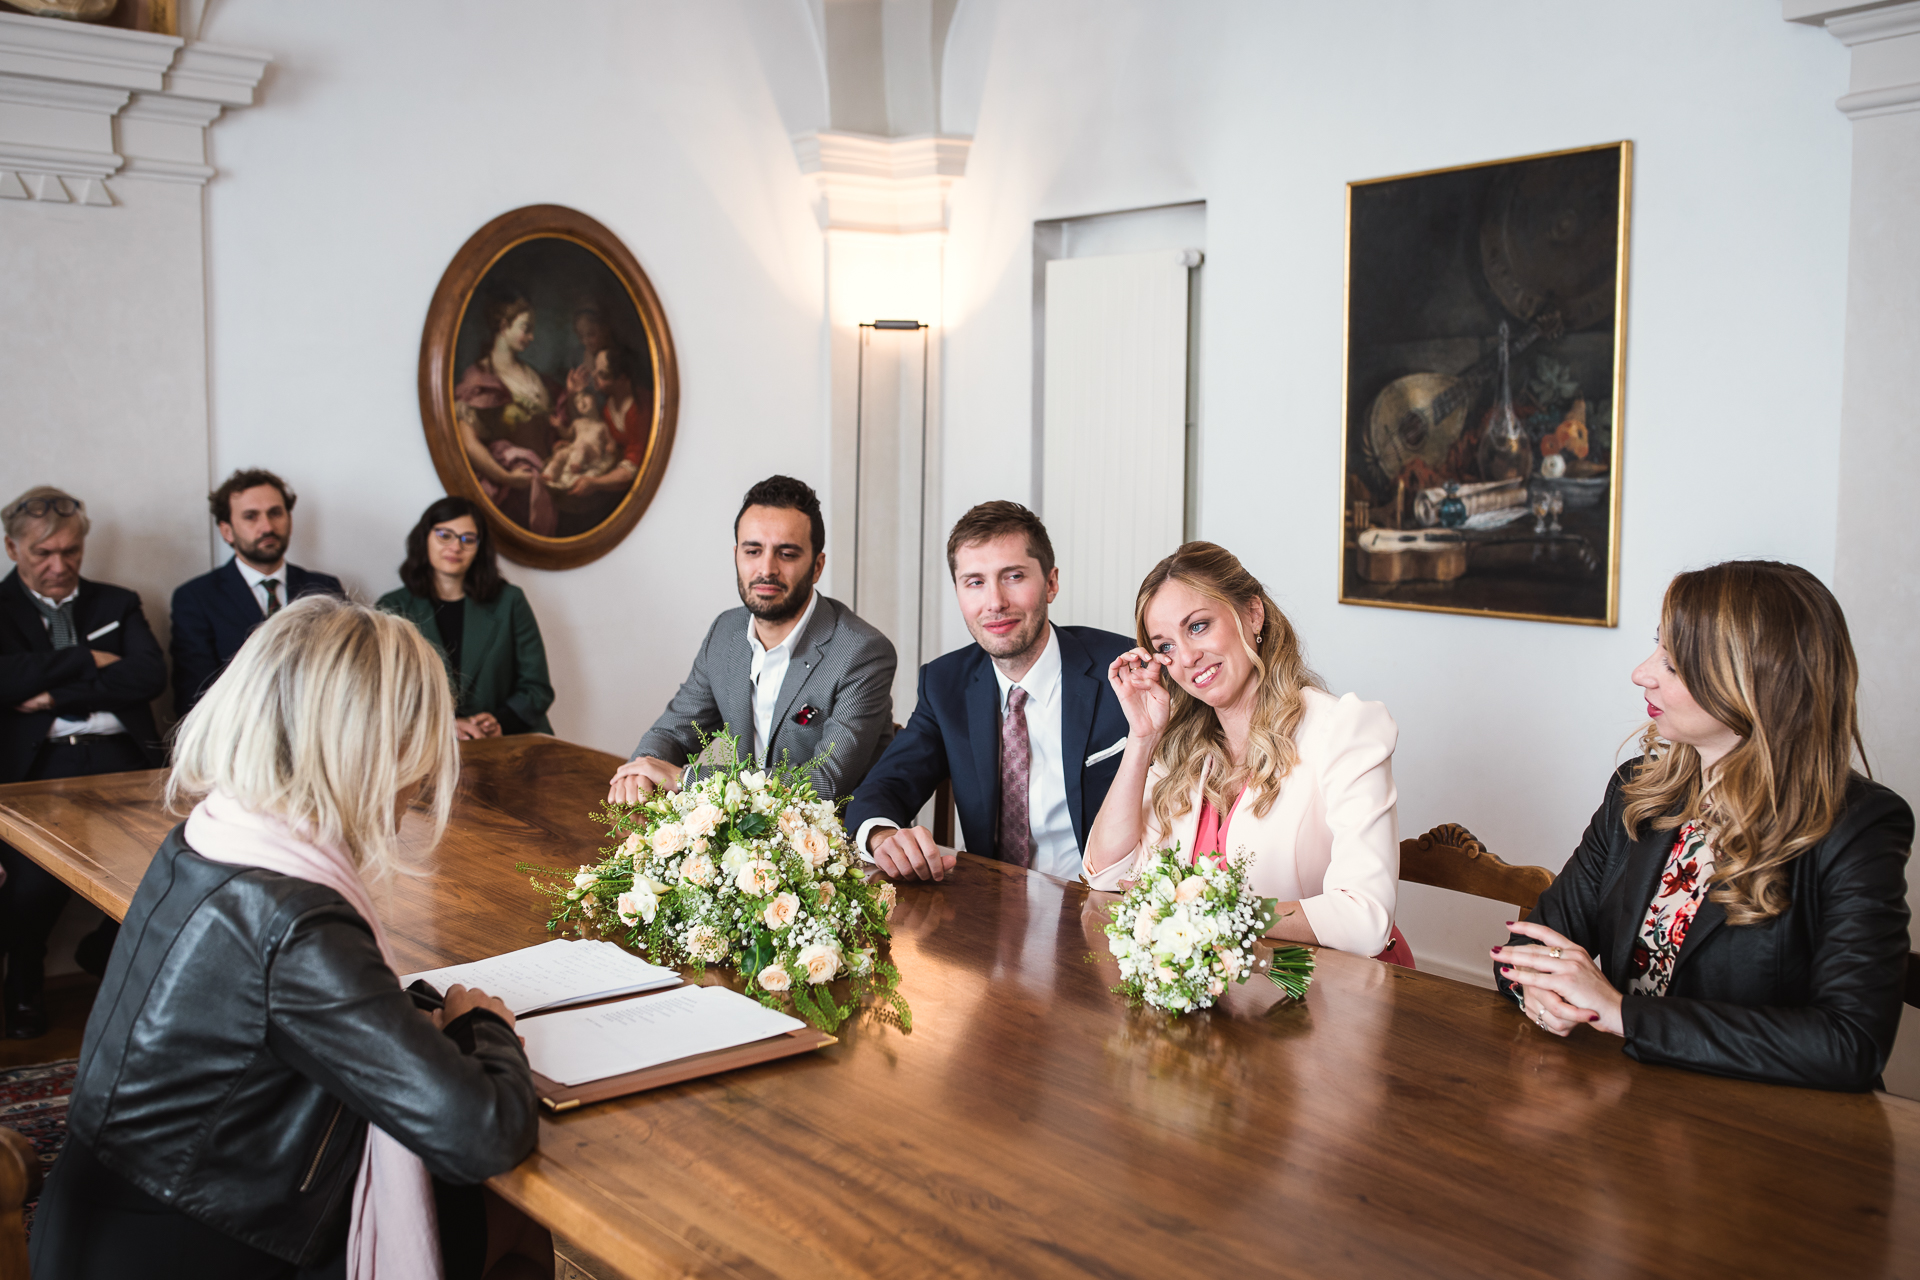 Switzerland City Hall Civil Wedding Ceremony Picture | the couple's councilor conducts their wedding ceremony, surrounded by loved ones in the intimate setting